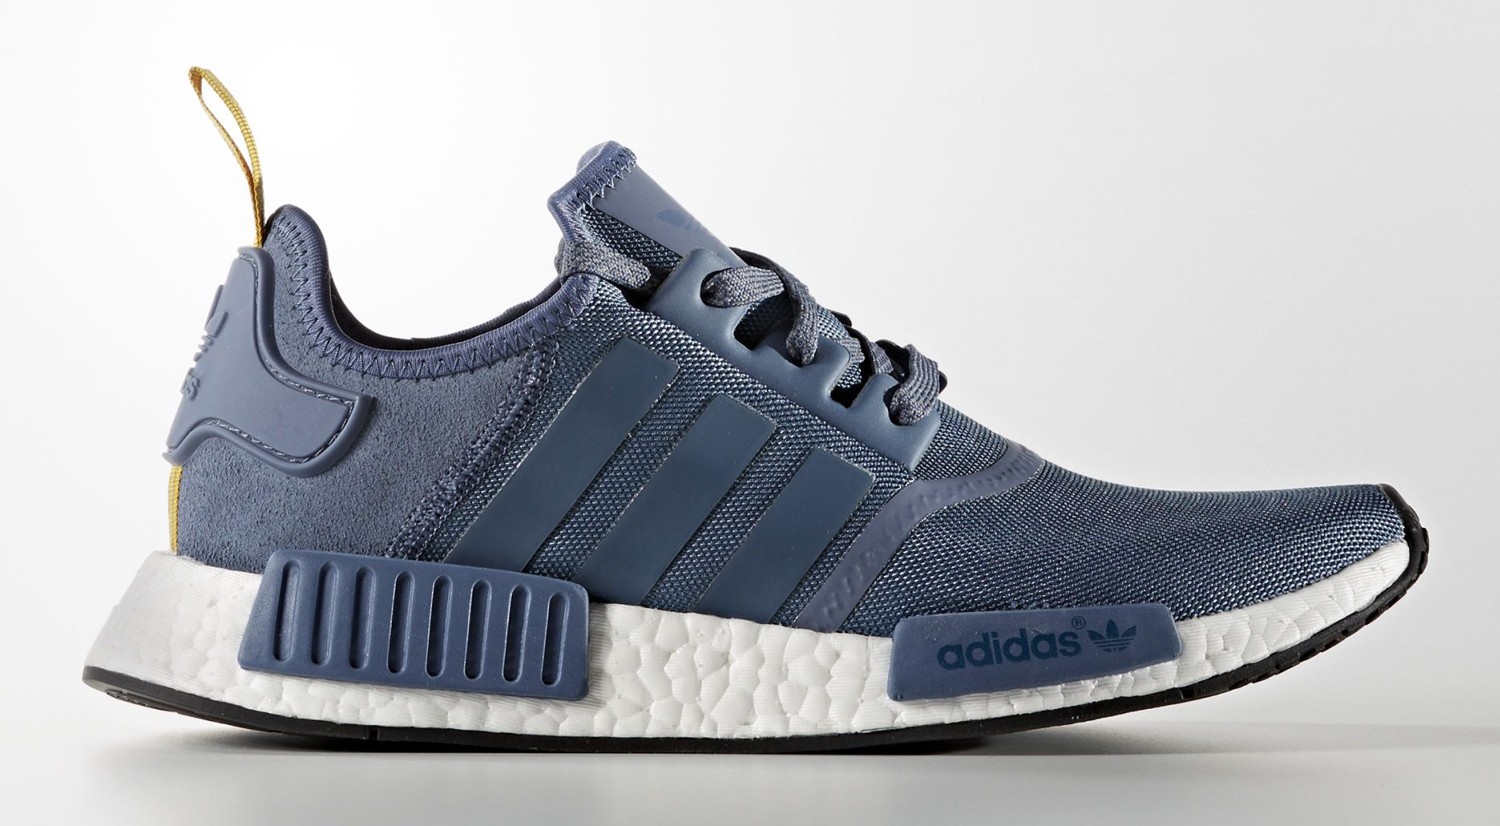 Adidas NMD Blue Suede Profile